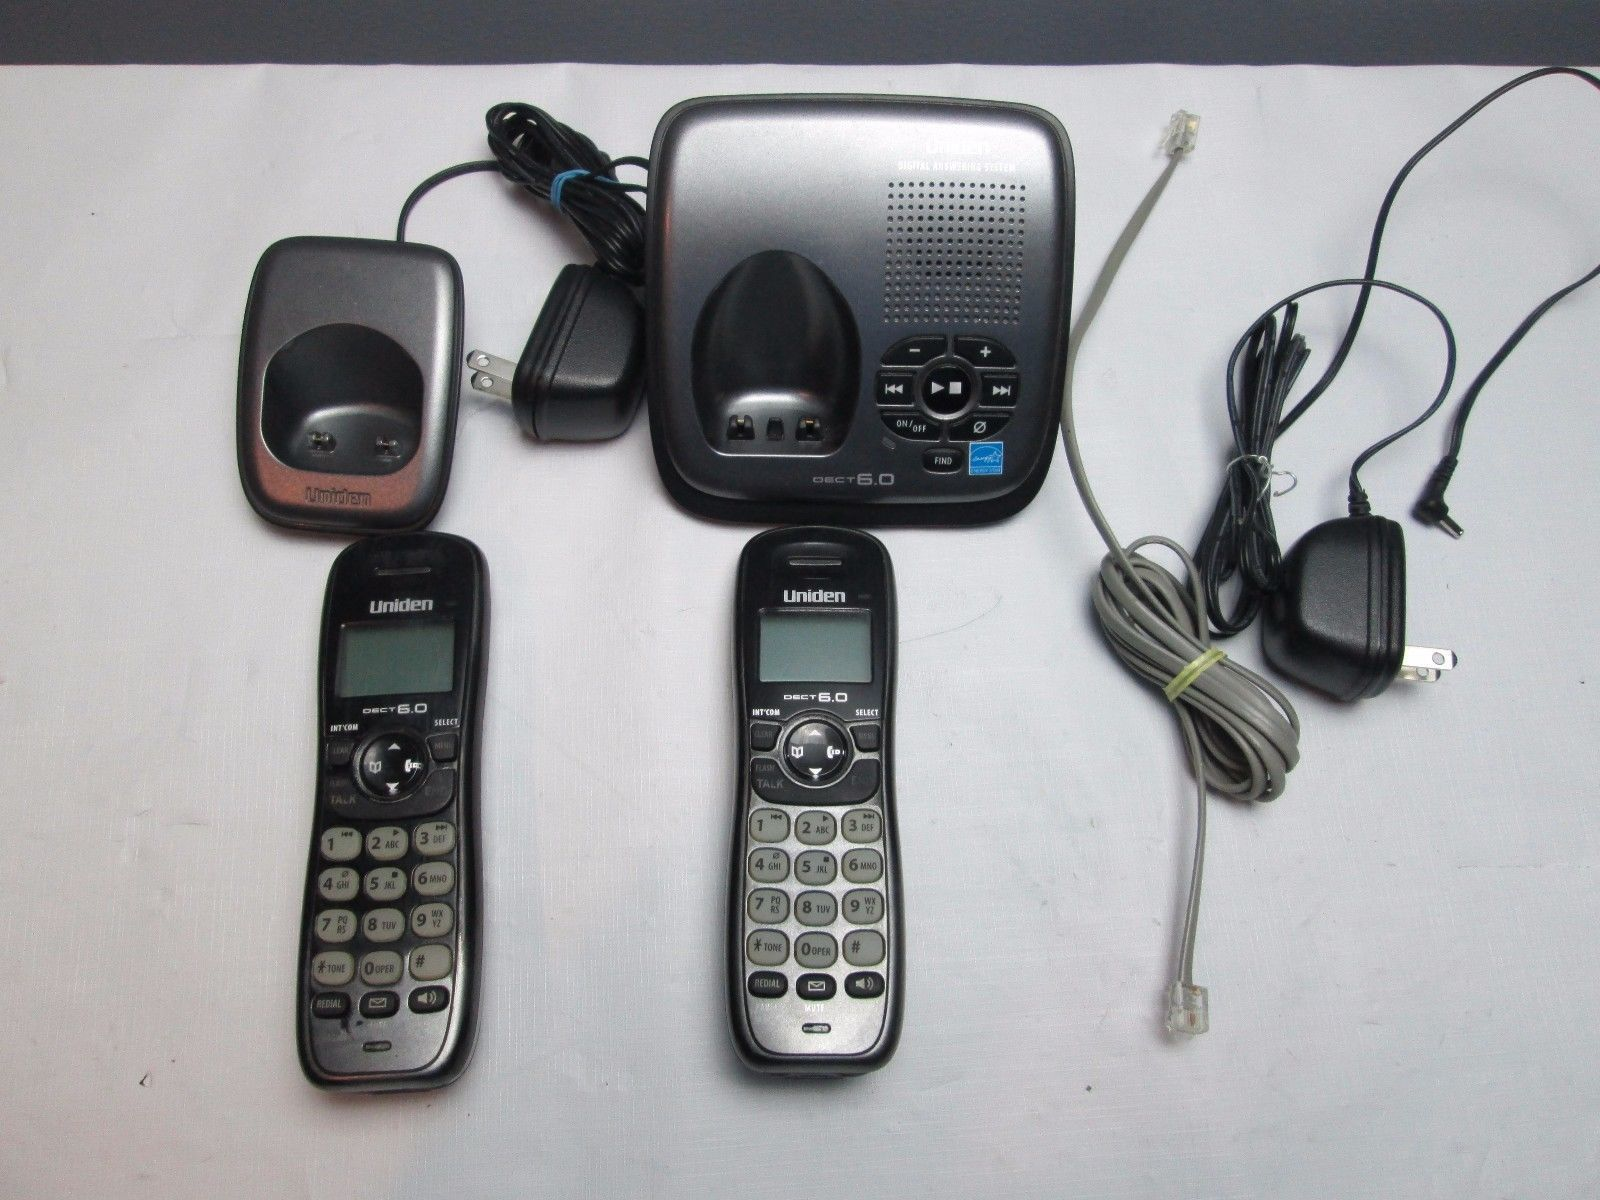 Uniden DECT1480-3 1.9 GHz Two Handsets Single Line Cordless Phone image 2